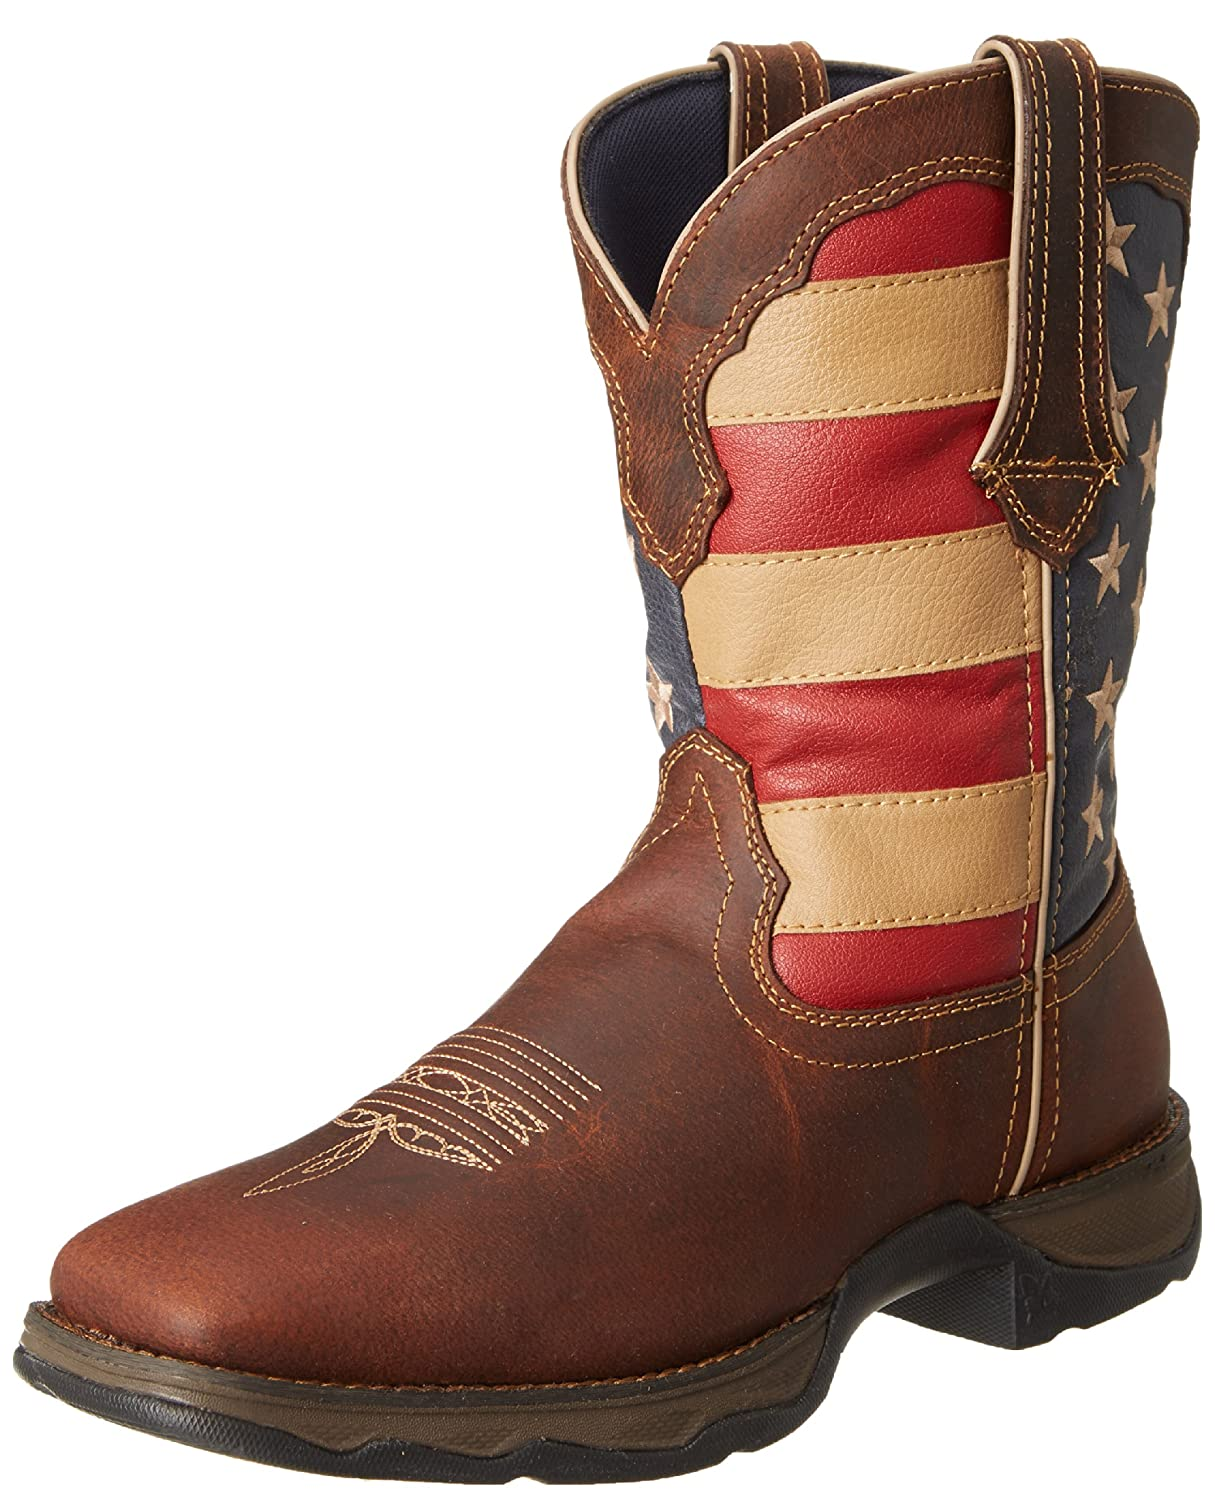 Durango Lady Rebel 10 Inch Flag RD4414 Western Boot B006MX5CVQ 9.5 B(M) US|Brown/Union Flag